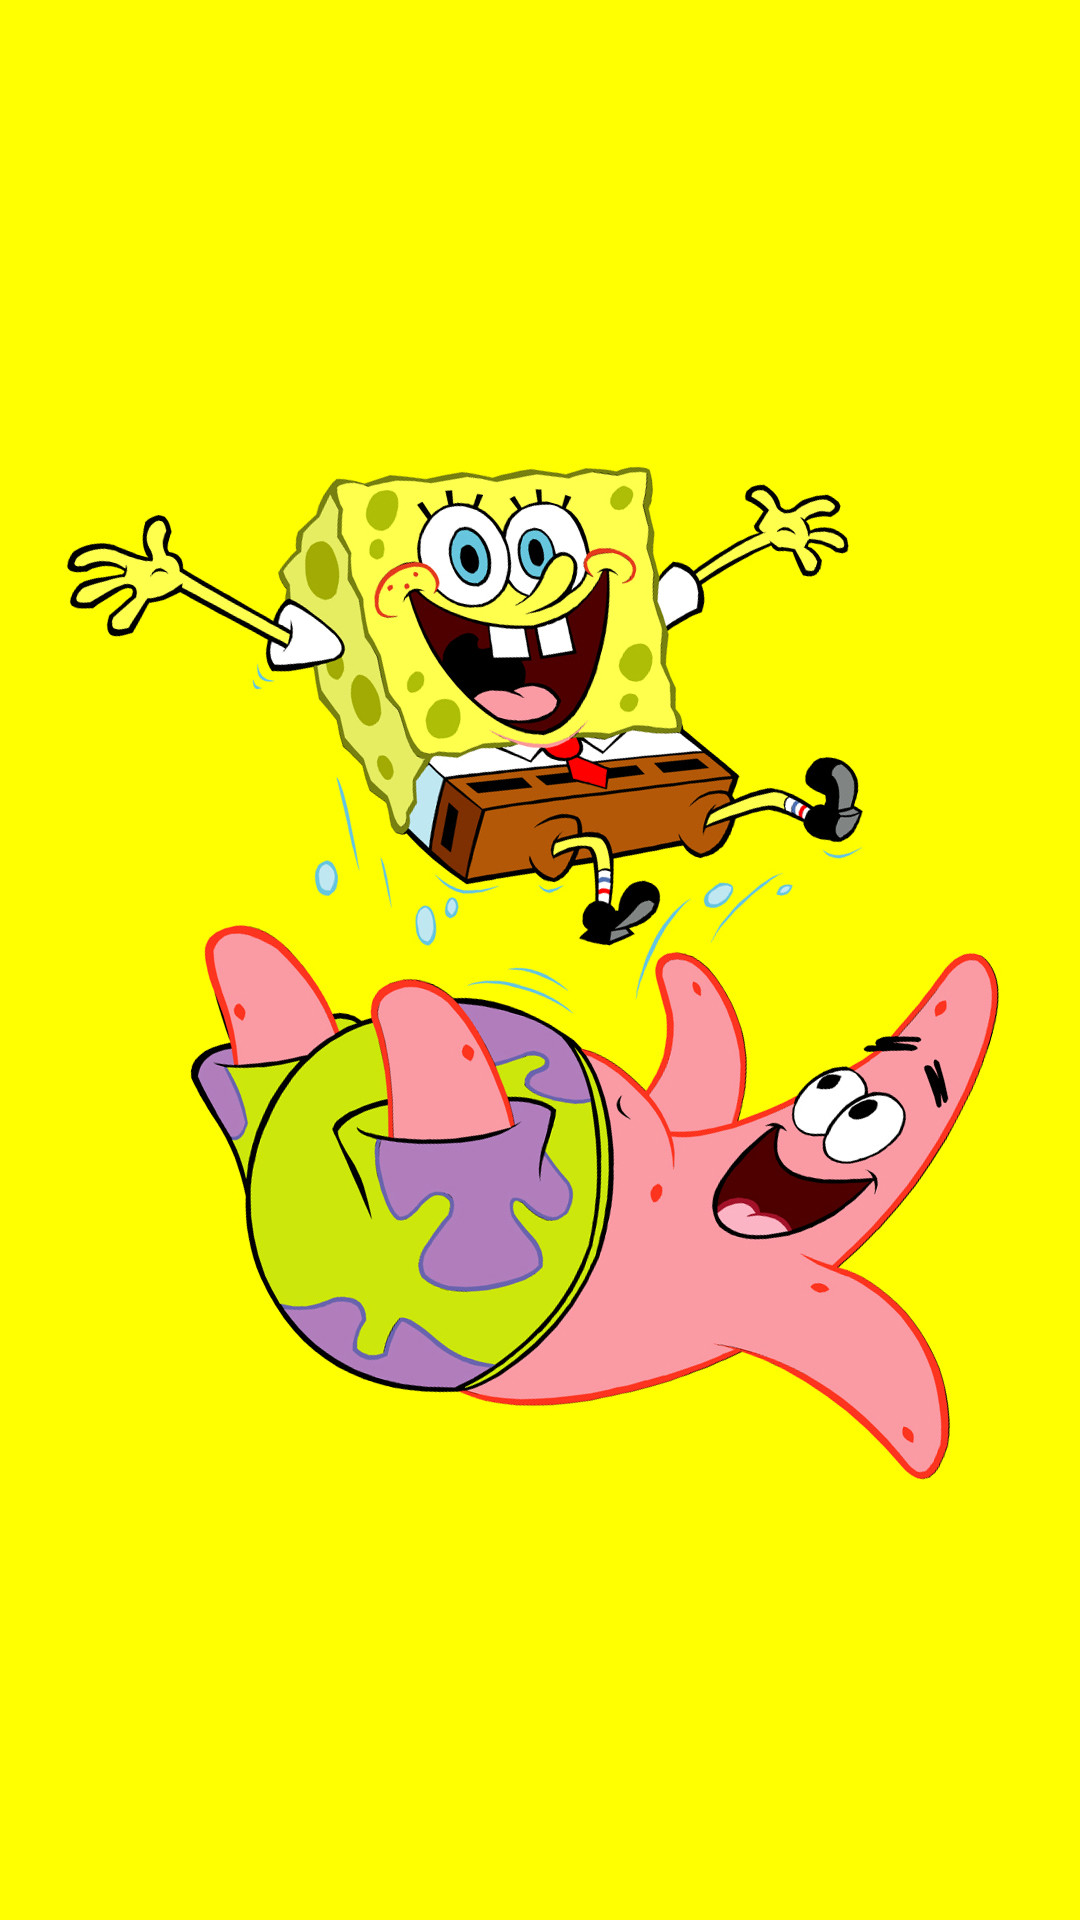 Pin by Nicole on SpongeBob Wallpaper | Pinterest | Spongebob and Save screen